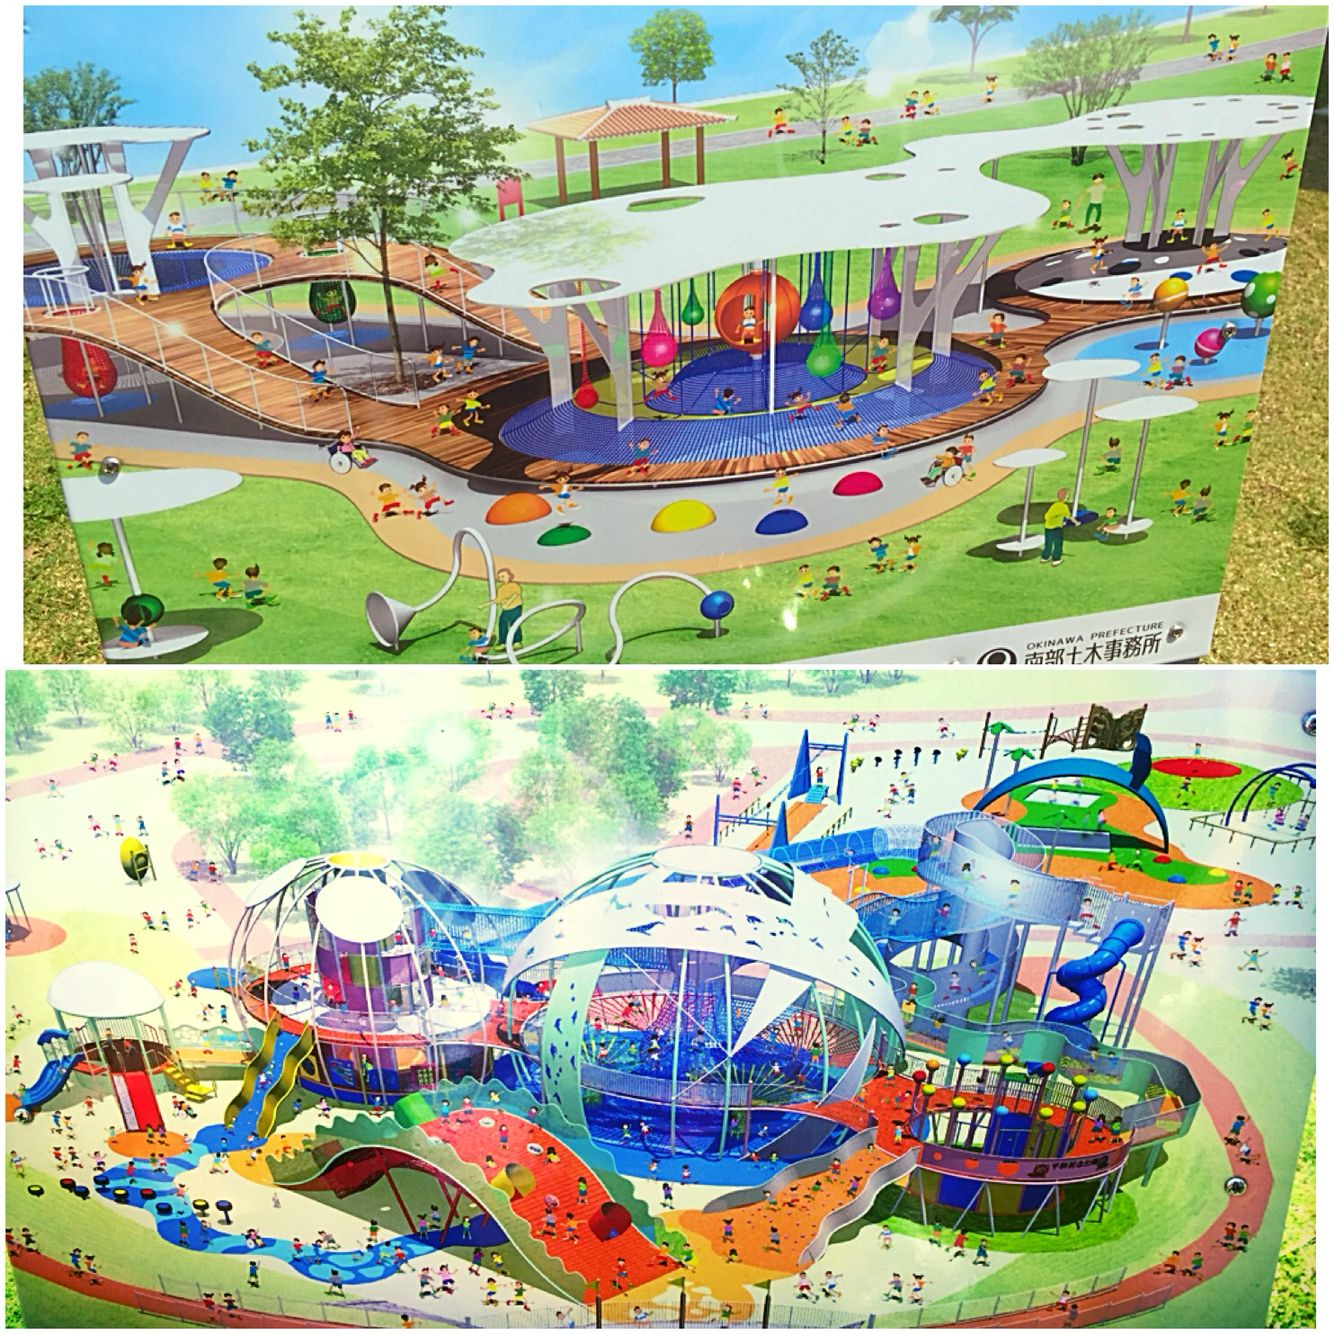 Blueprint of the 2 new kids parks getting build at peace memorial blueprint of the 2 new kids parks getting build at peace memorial park first one malvernweather Choice Image